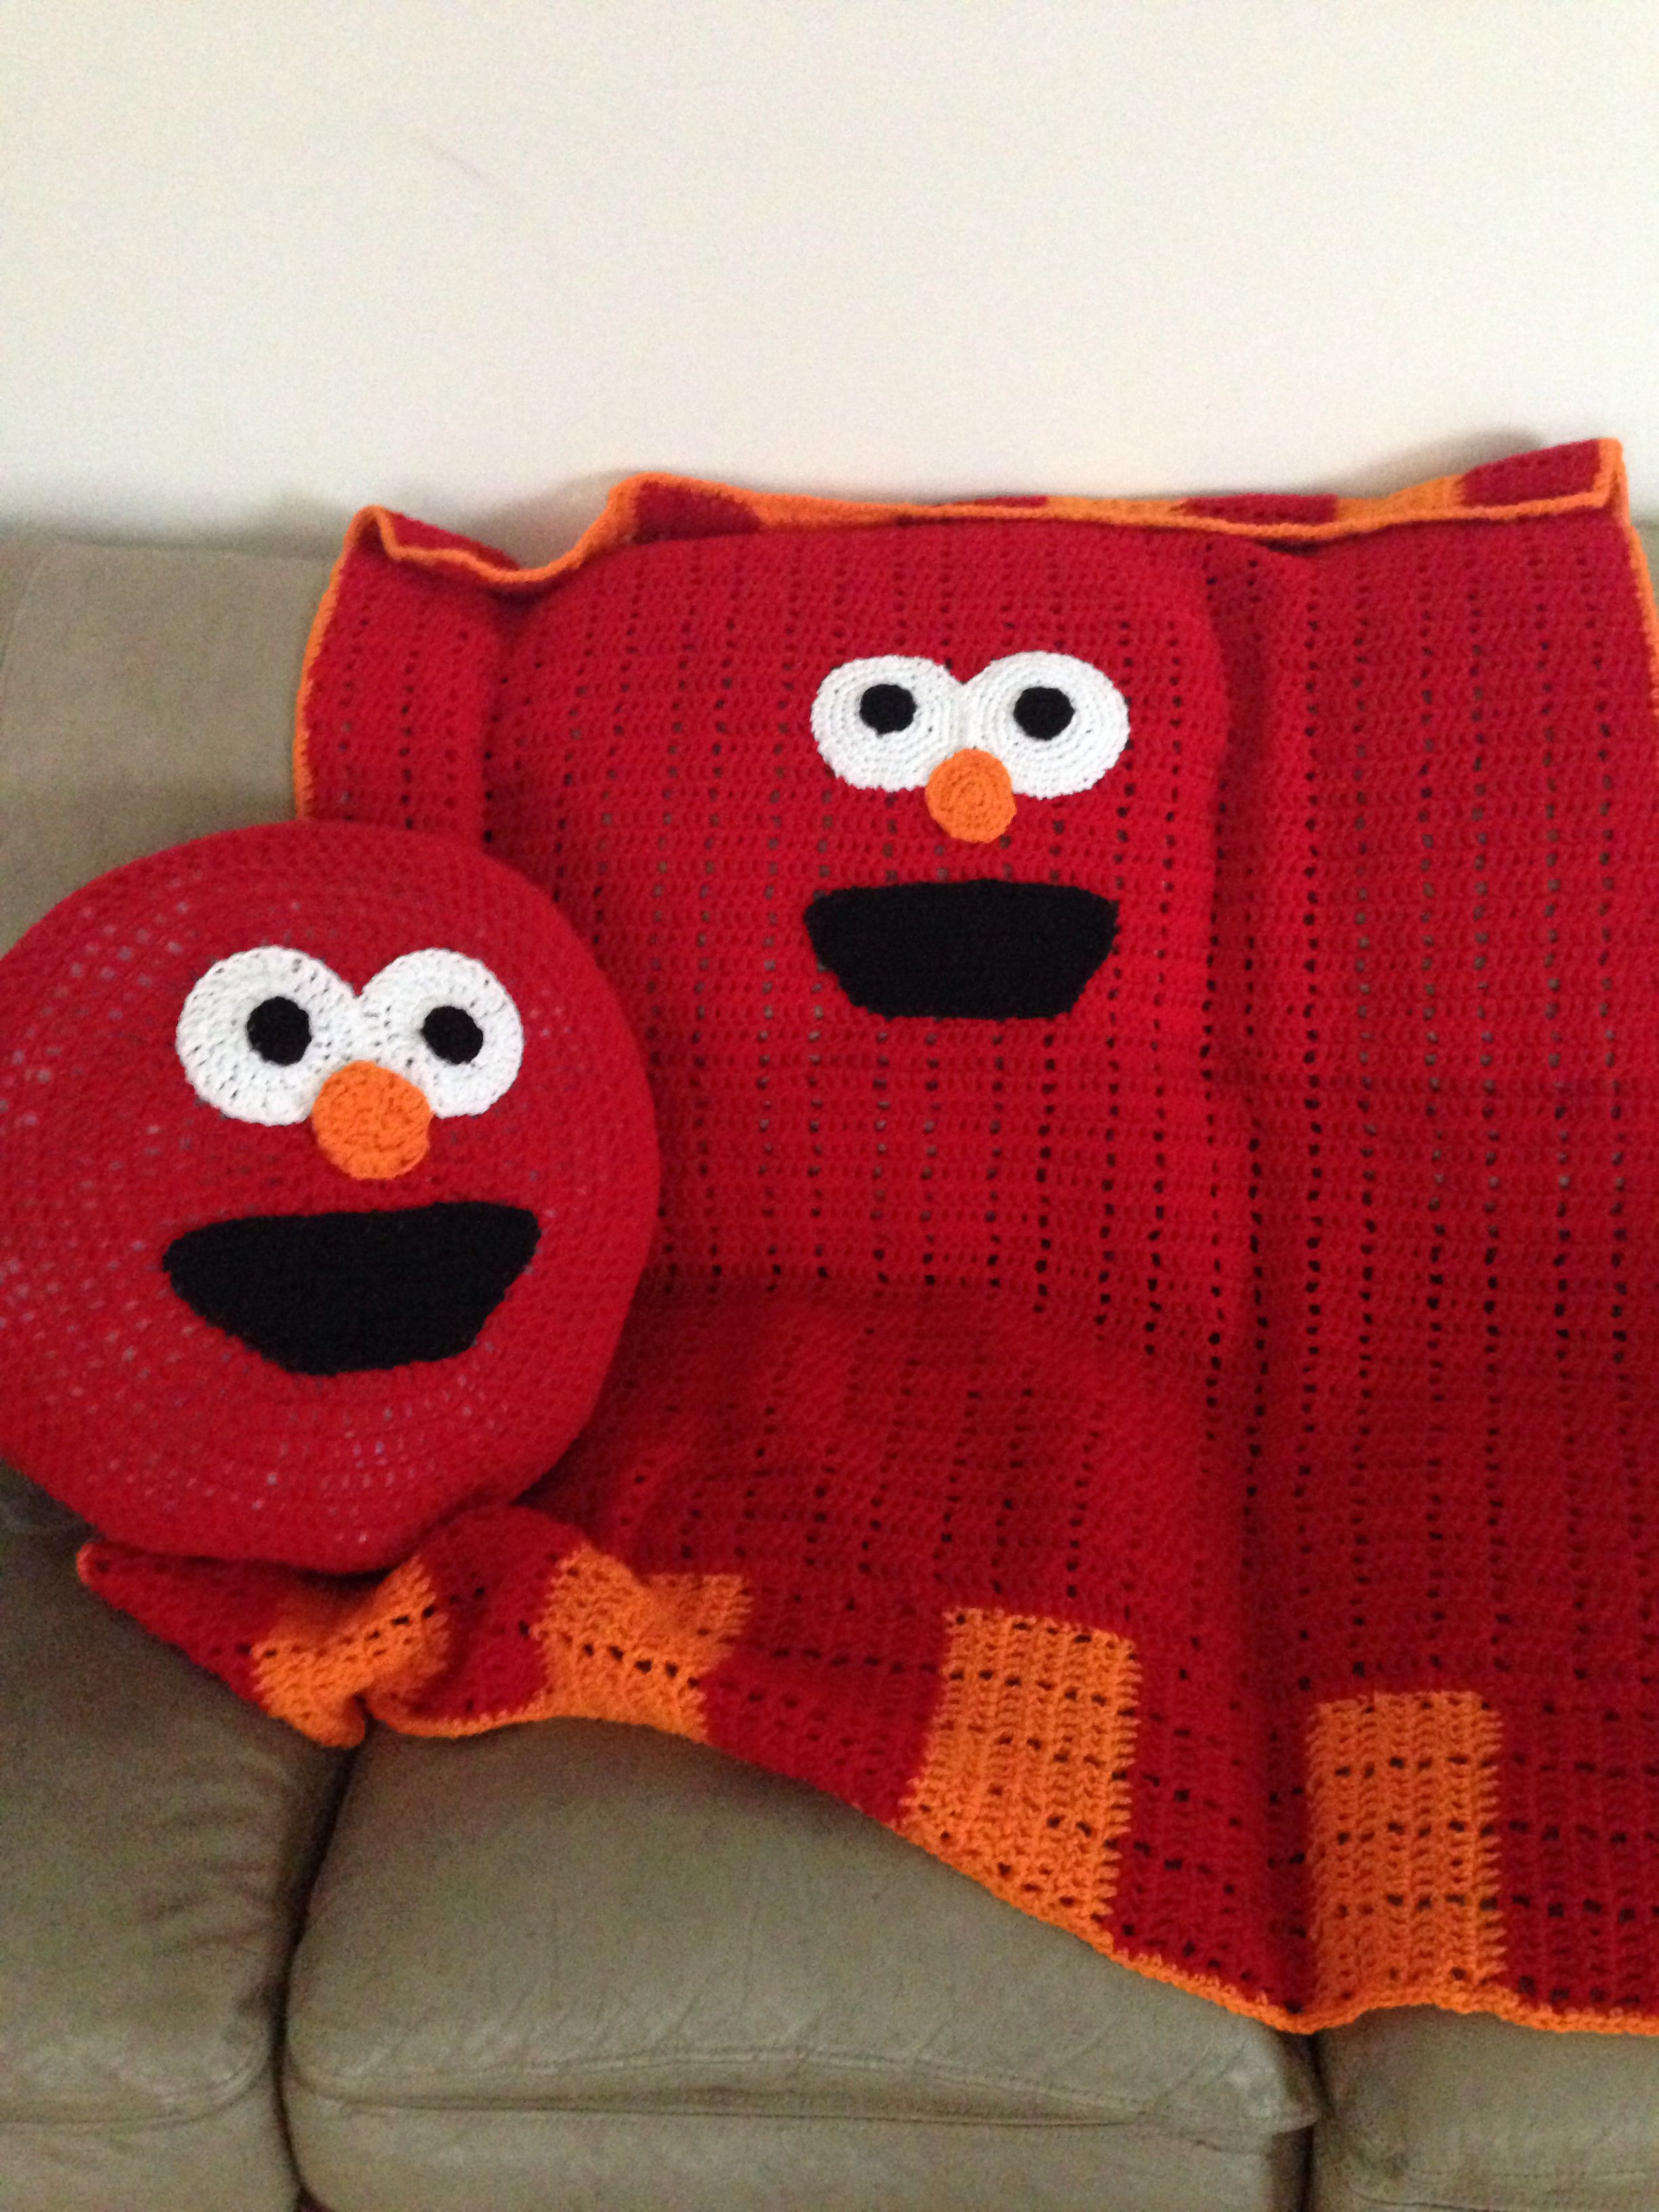 Elmo blanket and pillow | crochet baby afghan's part two ...